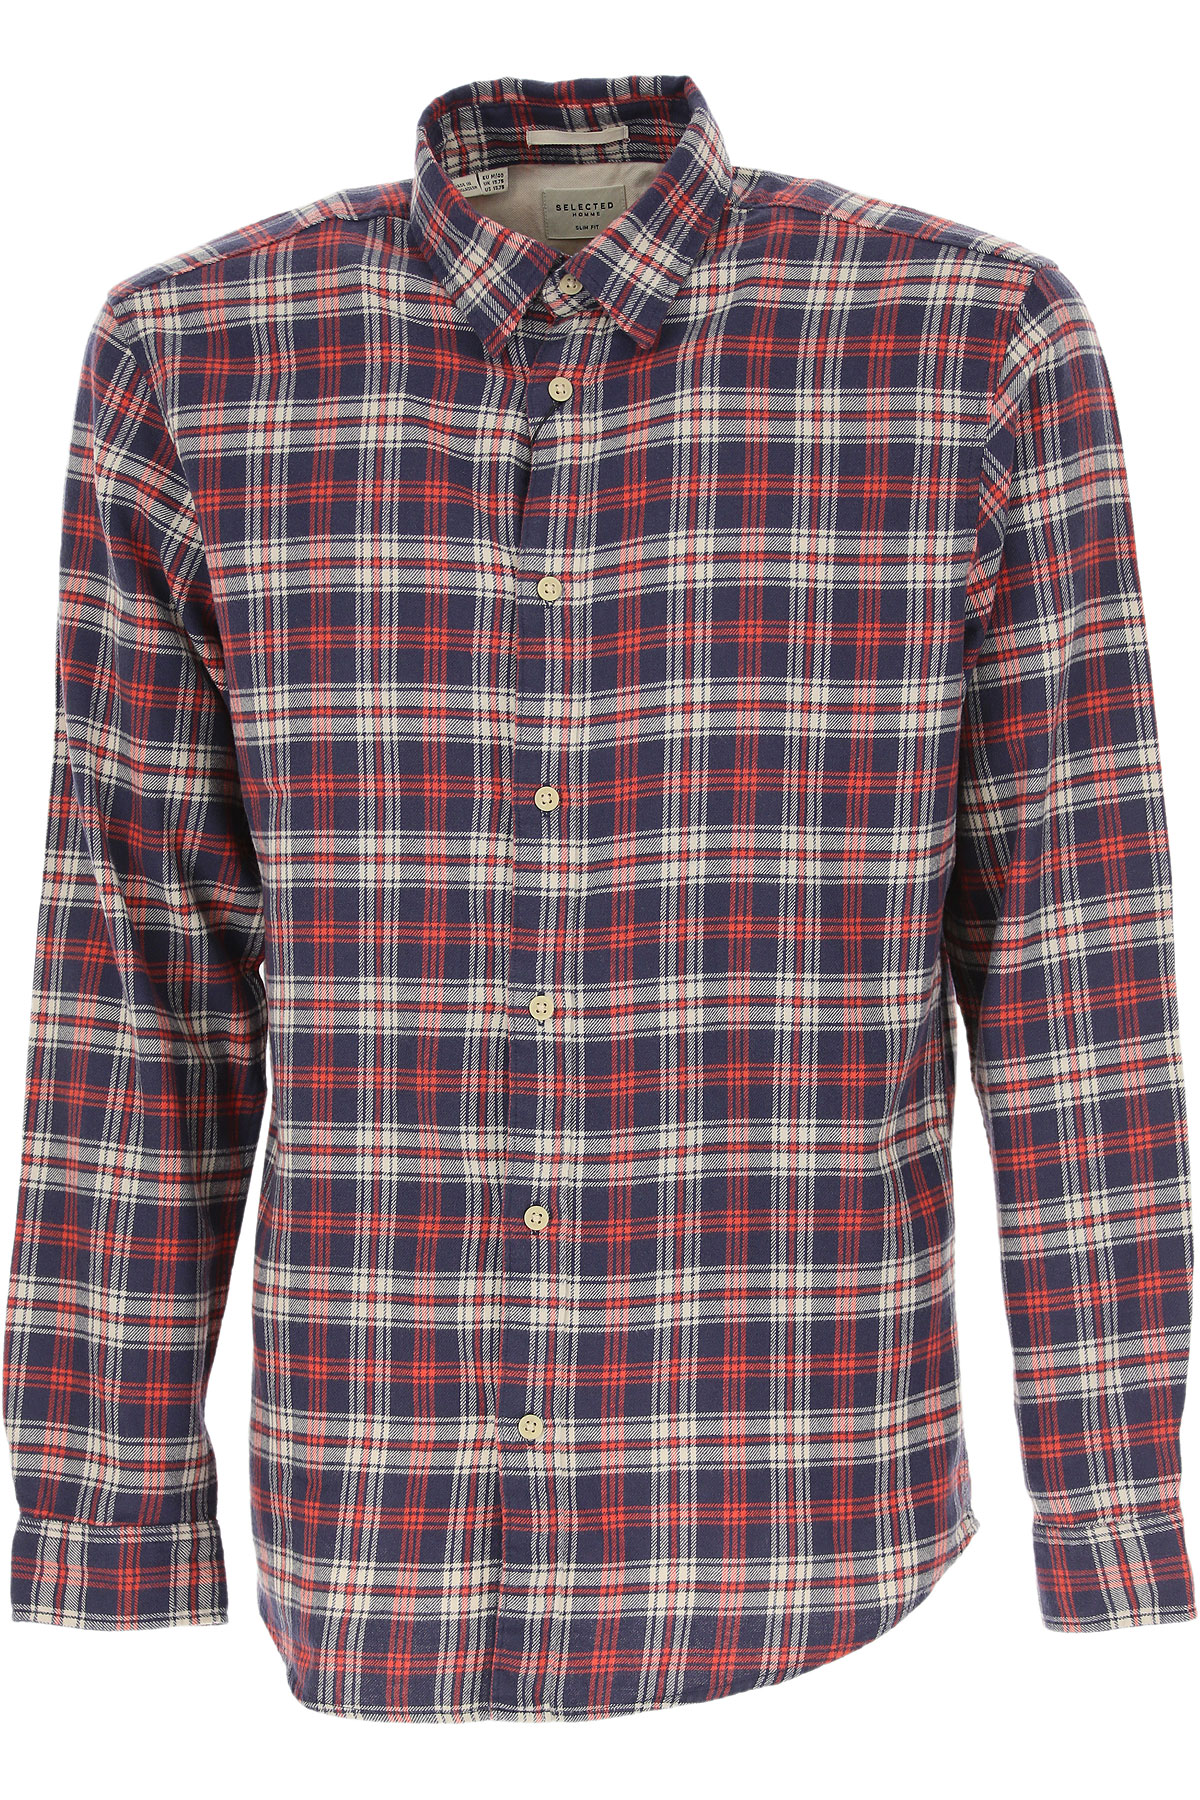 Selected Mens Clothing On Sale, Red, Cotton, 2019, S • IT 46 L • IT 50 XL • IT 52